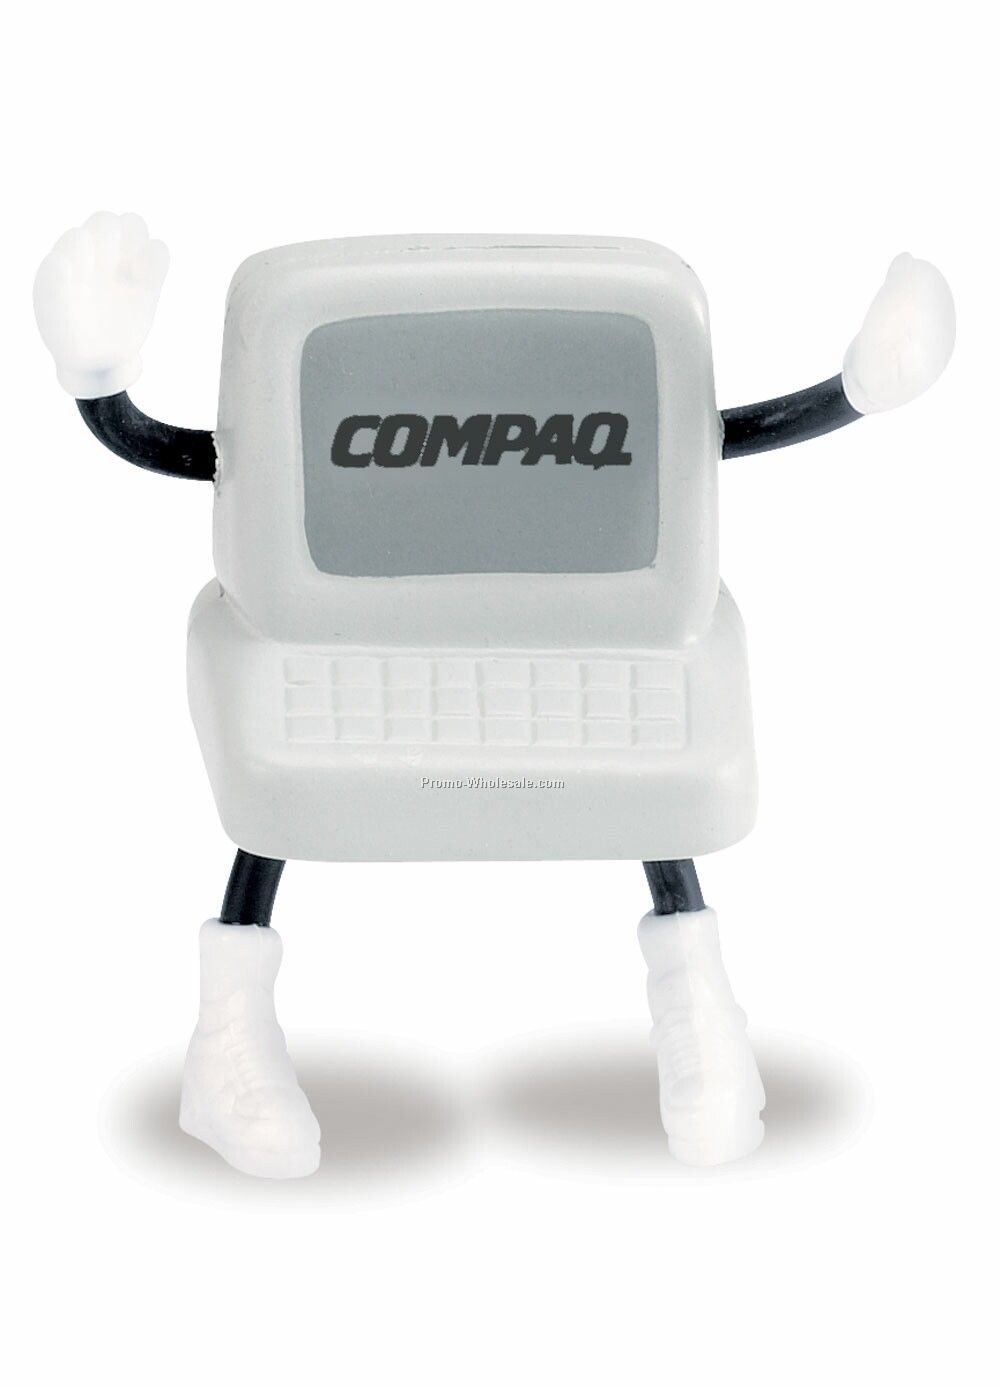 Computer Man Squeeze Toy